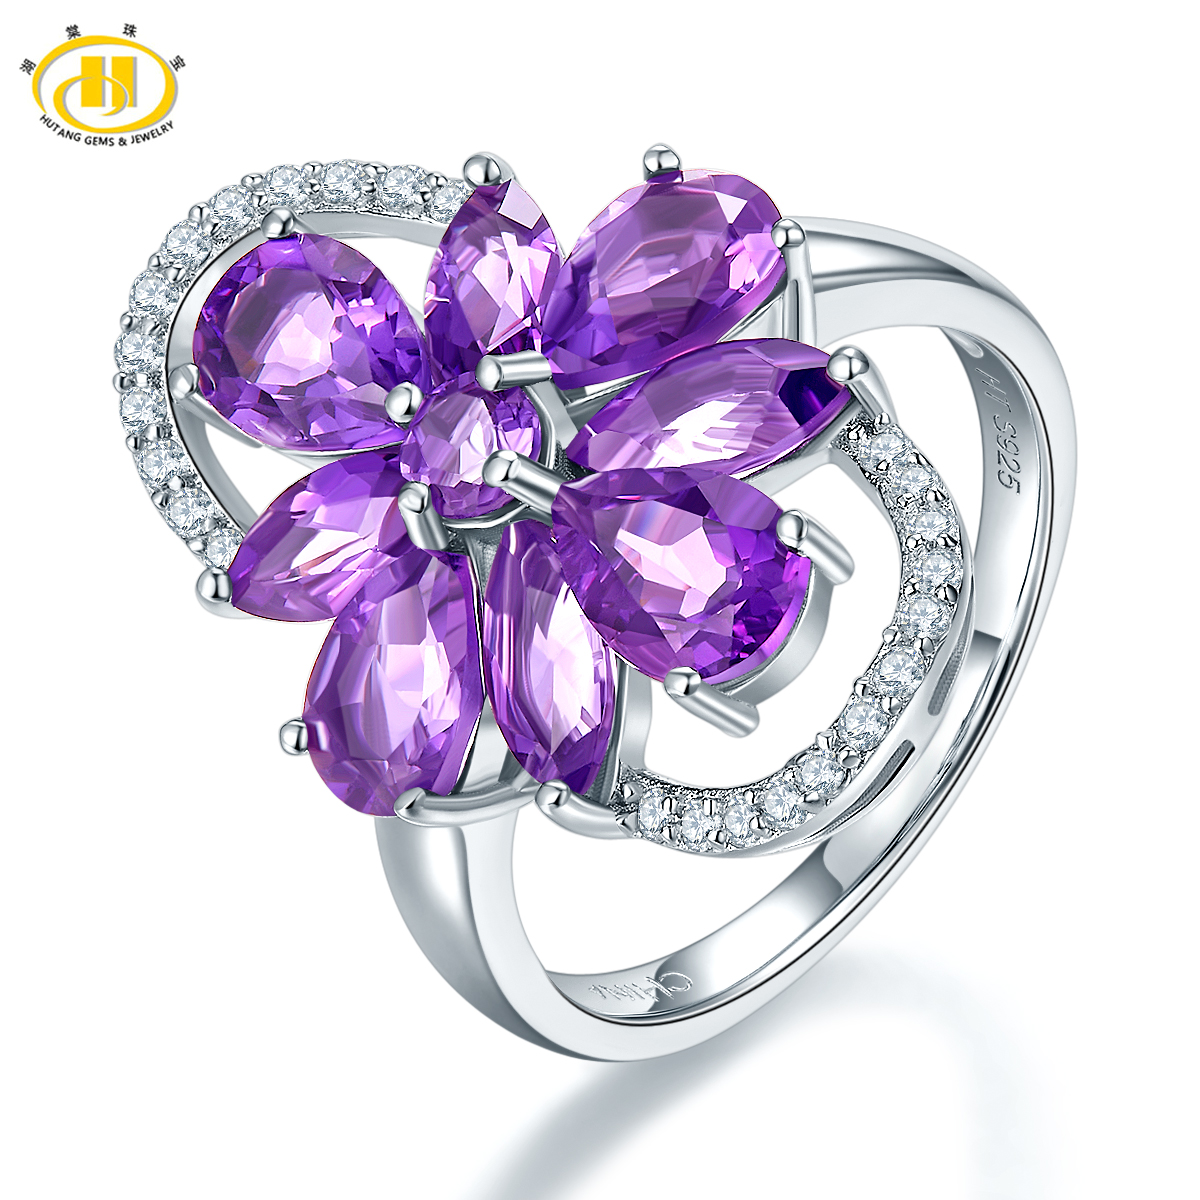 Hutang Luxury Natural Amethyst Ring Solid 925 Sterling Silver Gemstone Fine Jewelry Rings for Women Christmas Gift 11.11 umcho luxury tanzanite rings for women solid 925 sterling silver gemstone engagement ring sets christmas jewelry gift with box